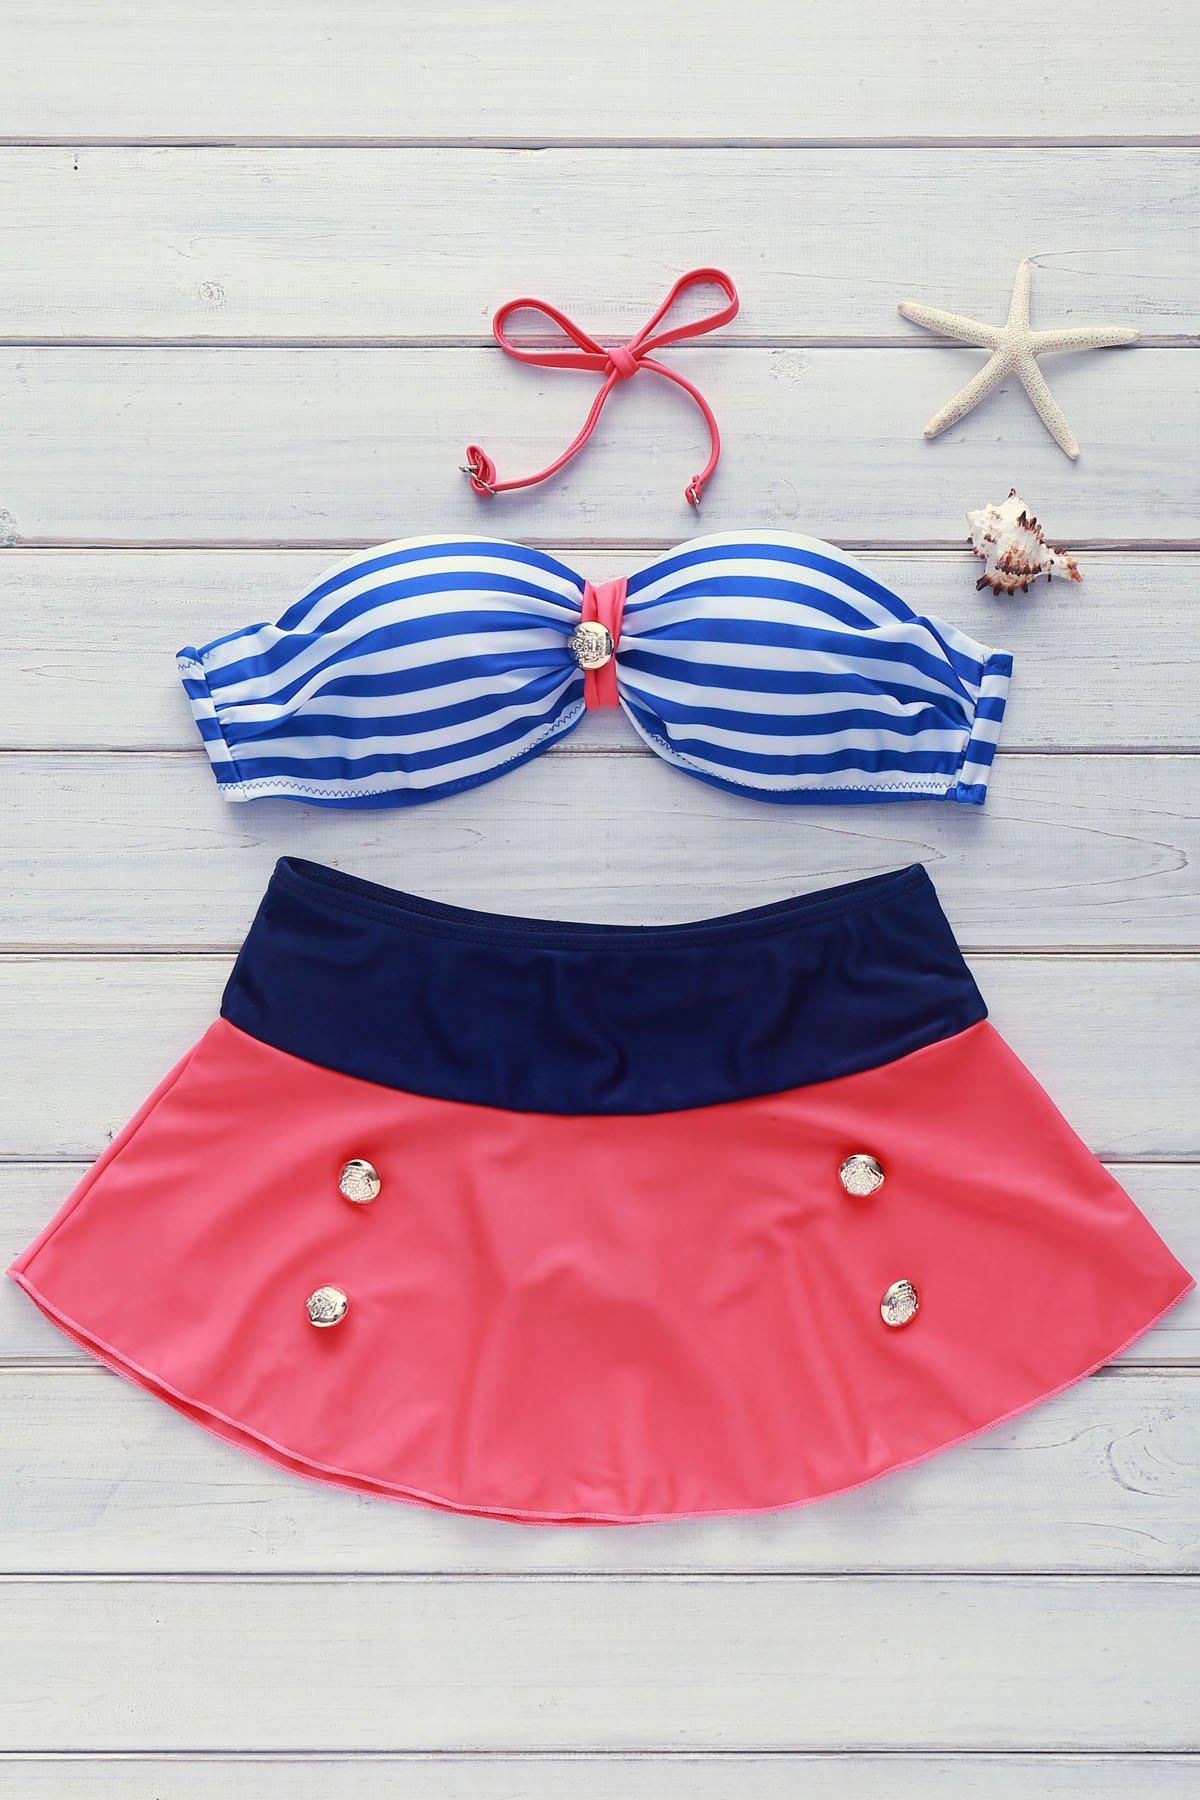 High Waisted Women's Charming Buttons Decoration Stripe Color Matching Swimsuit